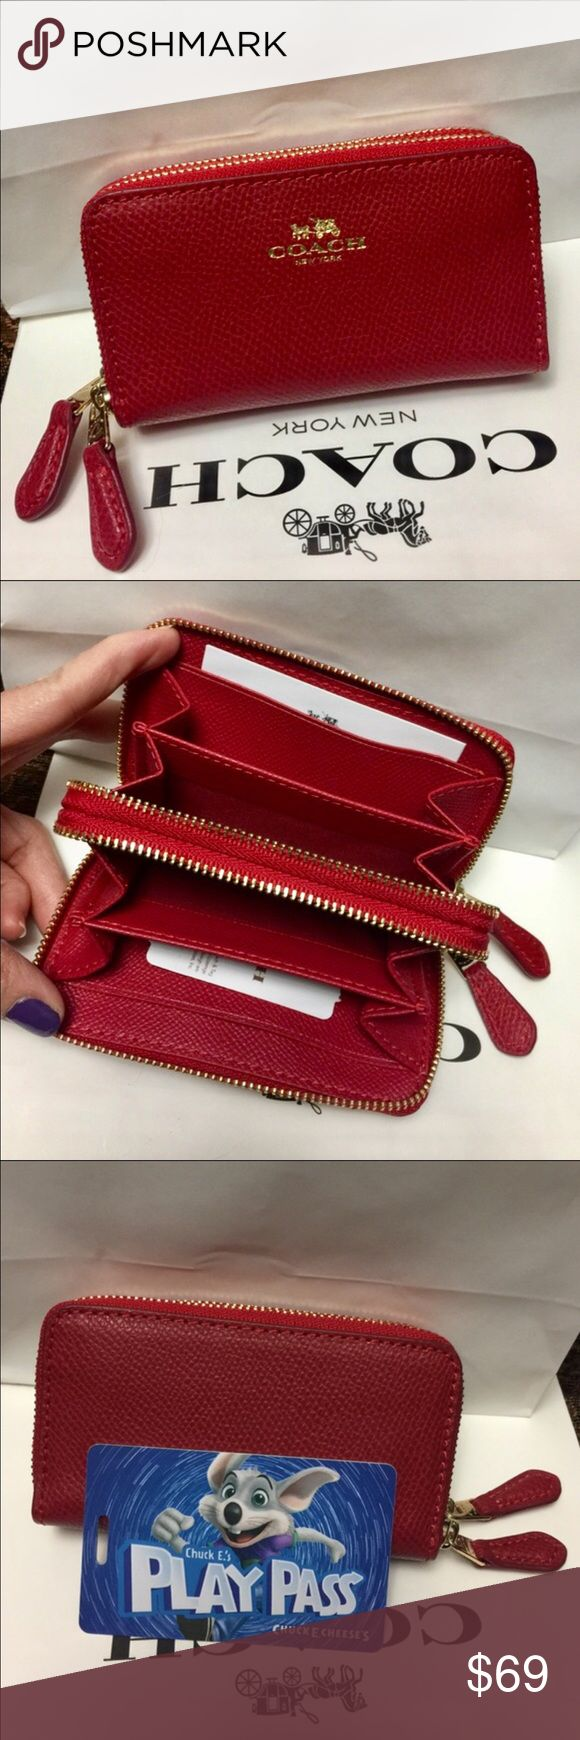 ❤️Coach Wallet❤️ 100% Authentic Coach mini Wallet, brand new!.Color True Red.❤️❤️❤️Firm Price!. Coach Bags Wallets